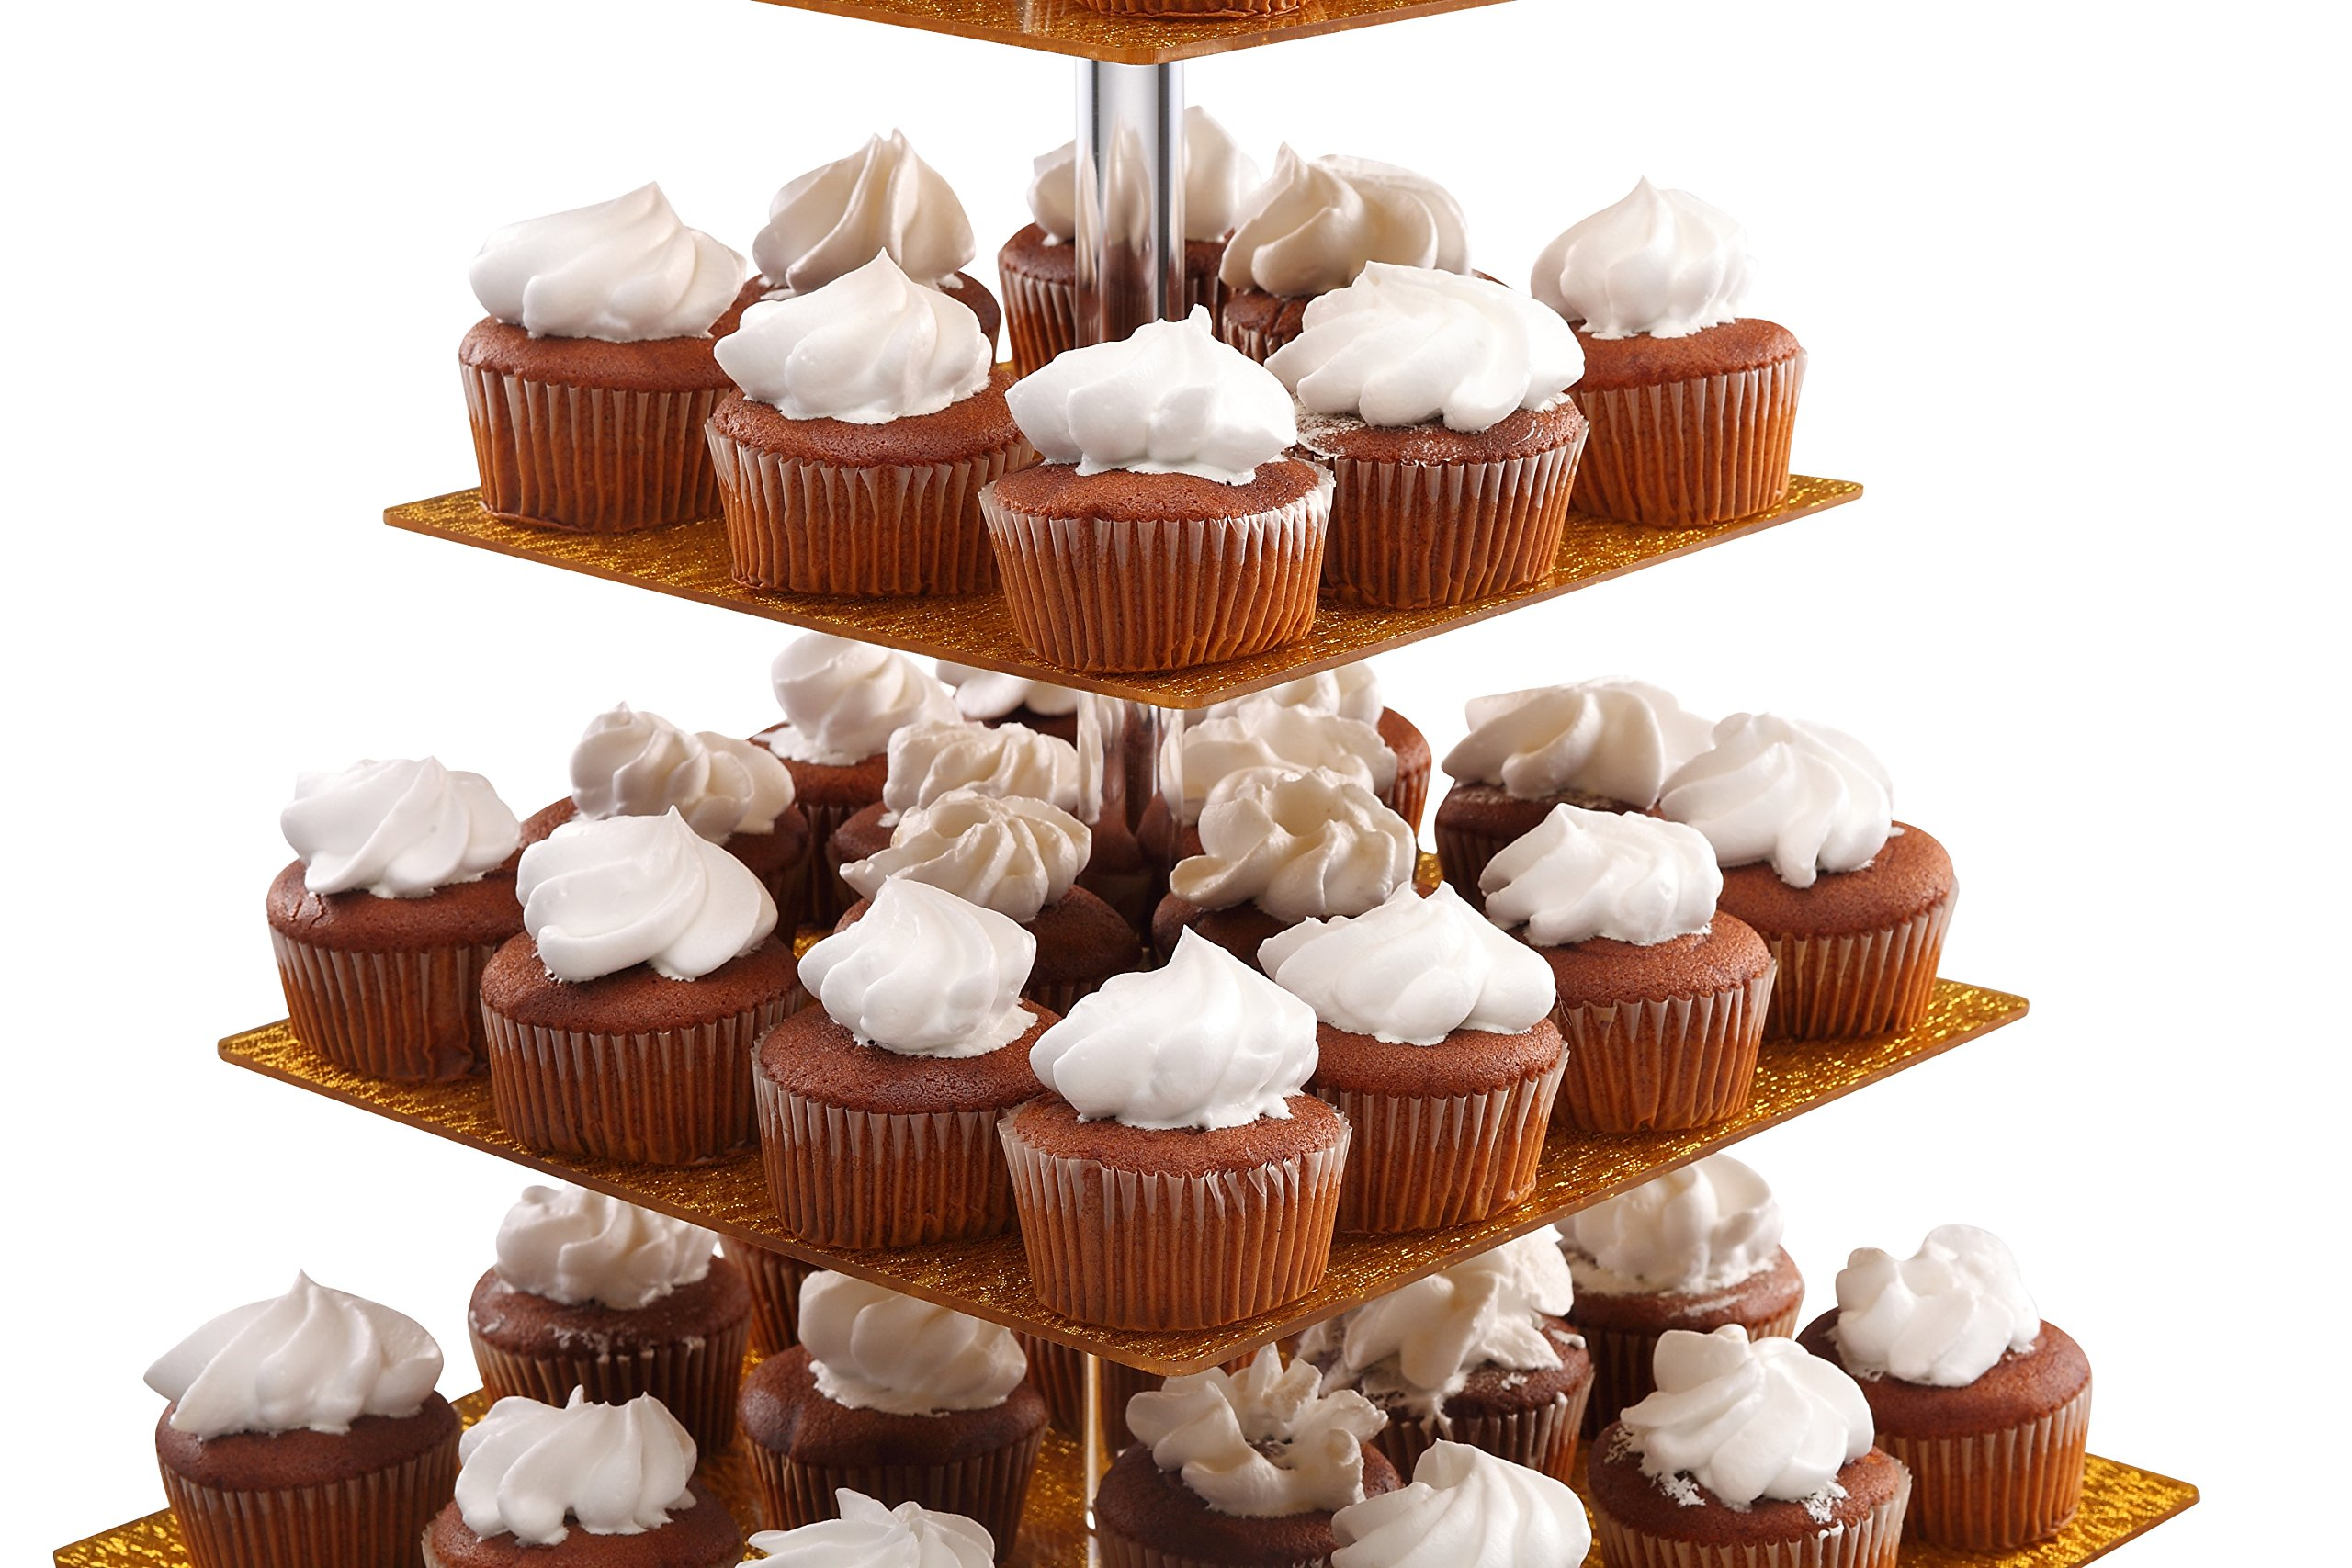 Eglaf Acrylic 5-Tier Gold Cupcake Stand Cakes and Desserts Display Tower/Food Display Platter for Wedding Party (5-Tier-Square-Gold) by Eglaf (Image #7)